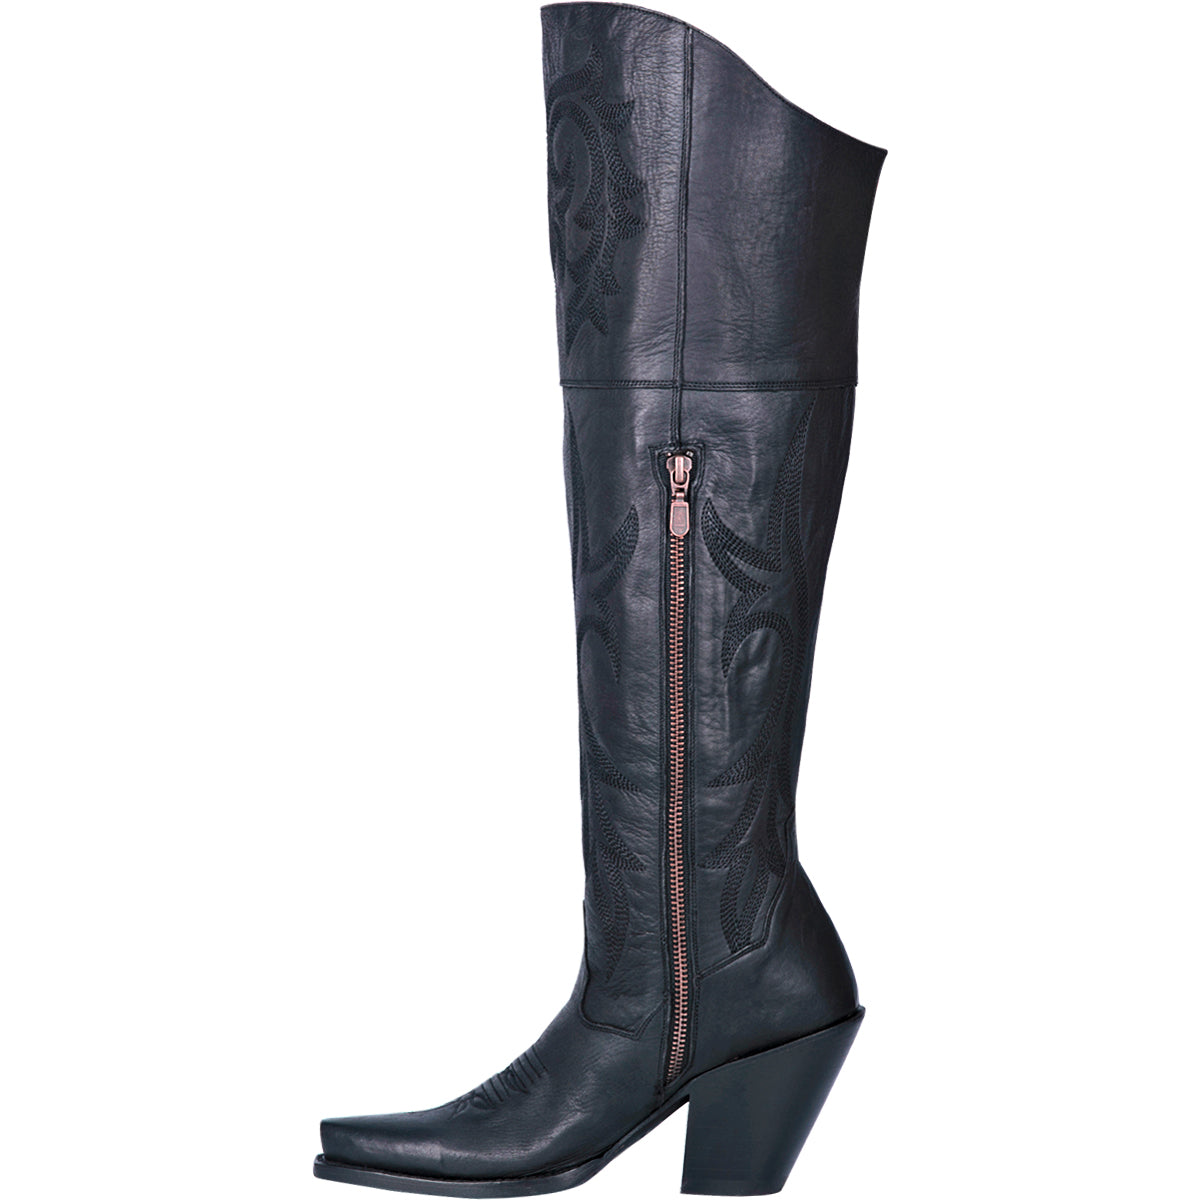 JILTED LEATHER BOOT - Dan Post Boots